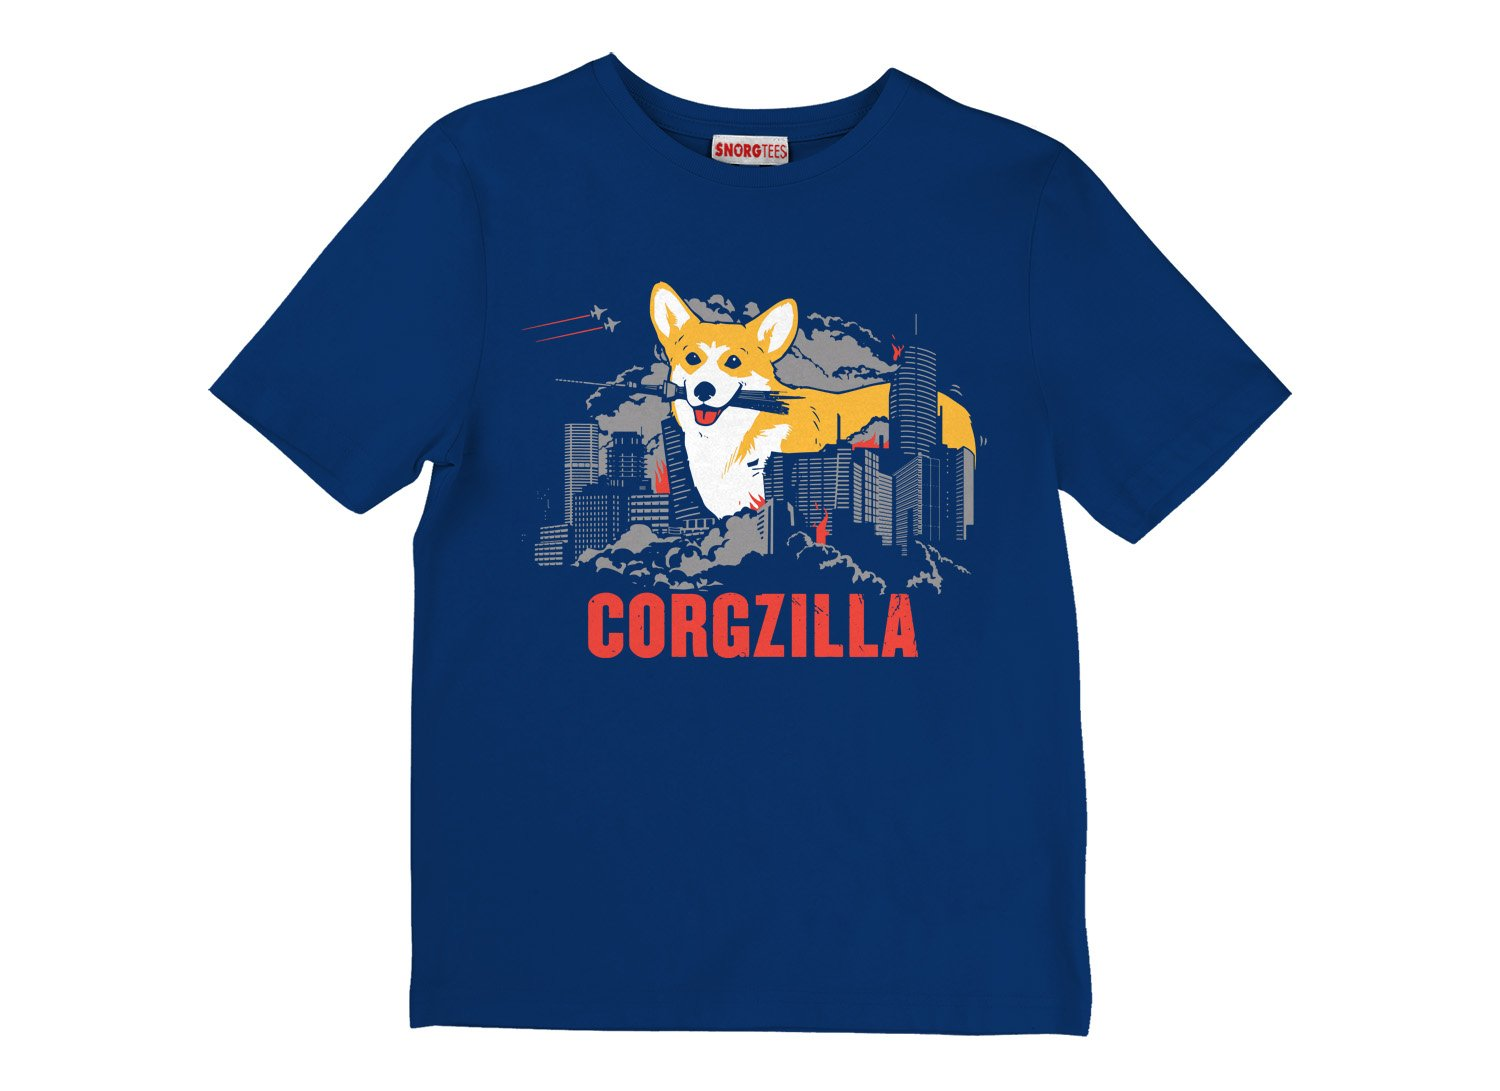 Corgzilla on Kids T-Shirt